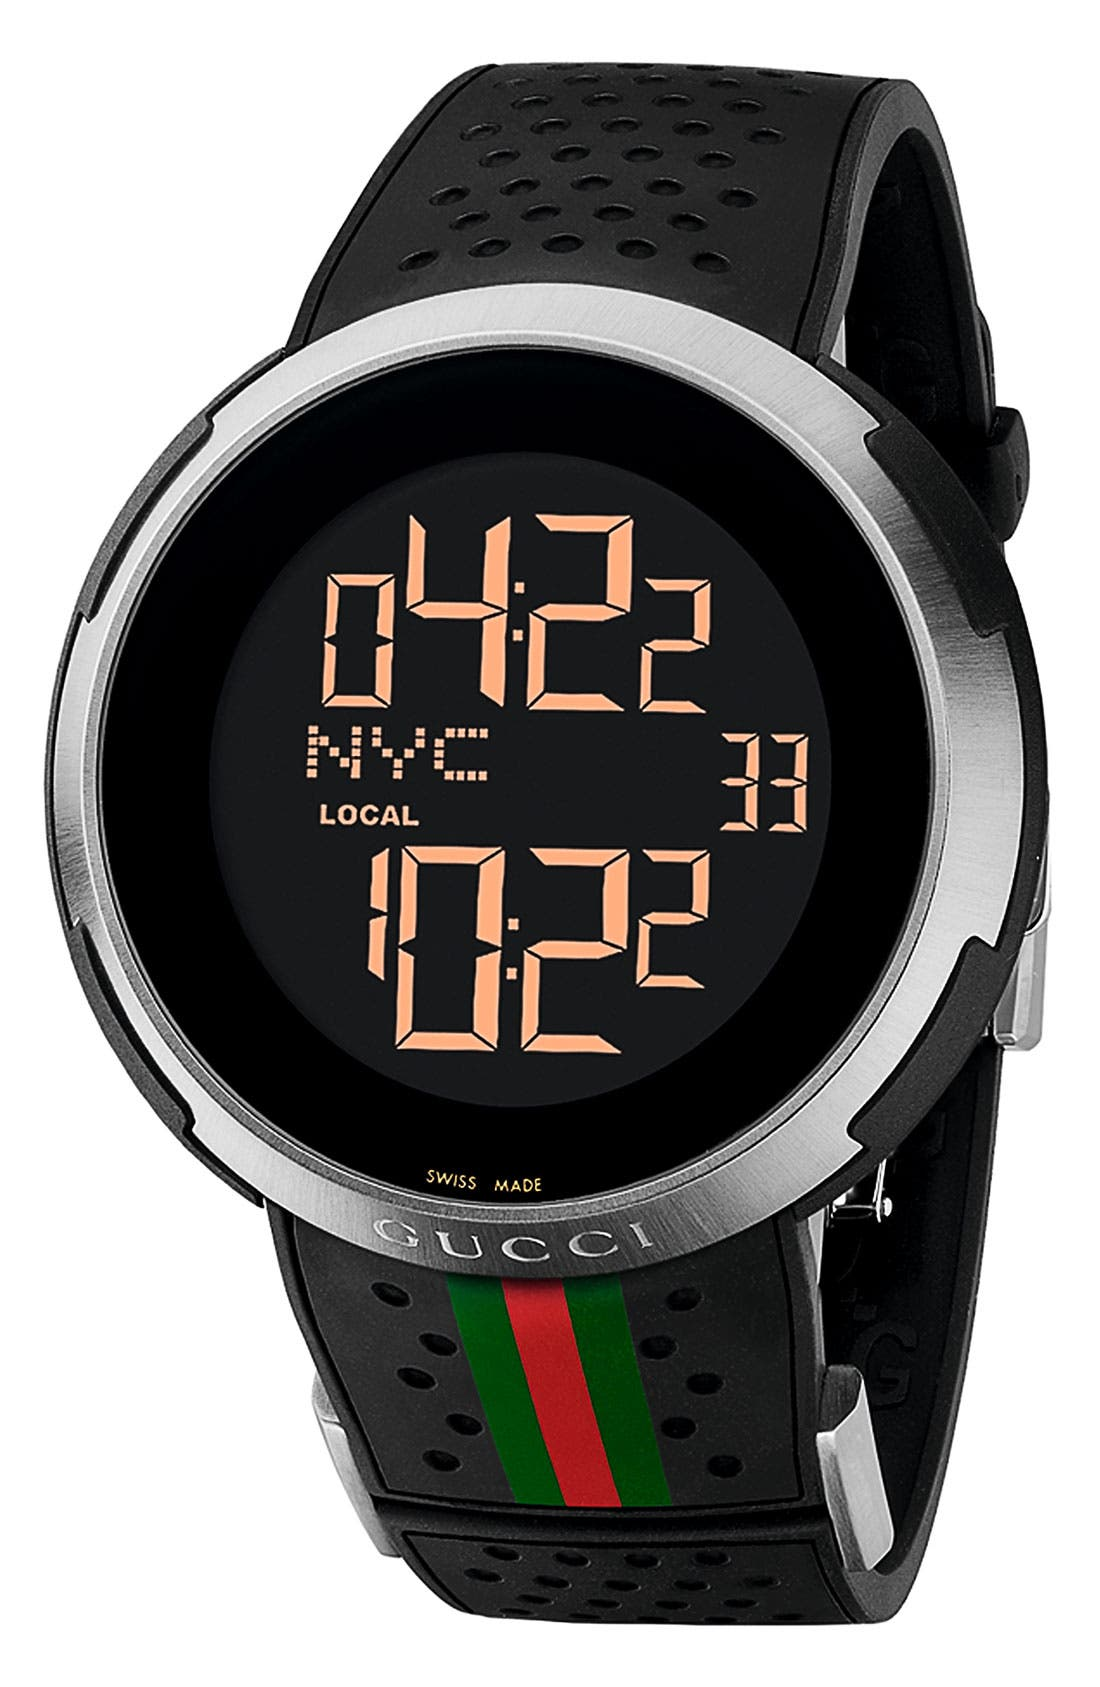 Main Image - Gucci 'I Gucci' Rubber Strap Watch, 49mm